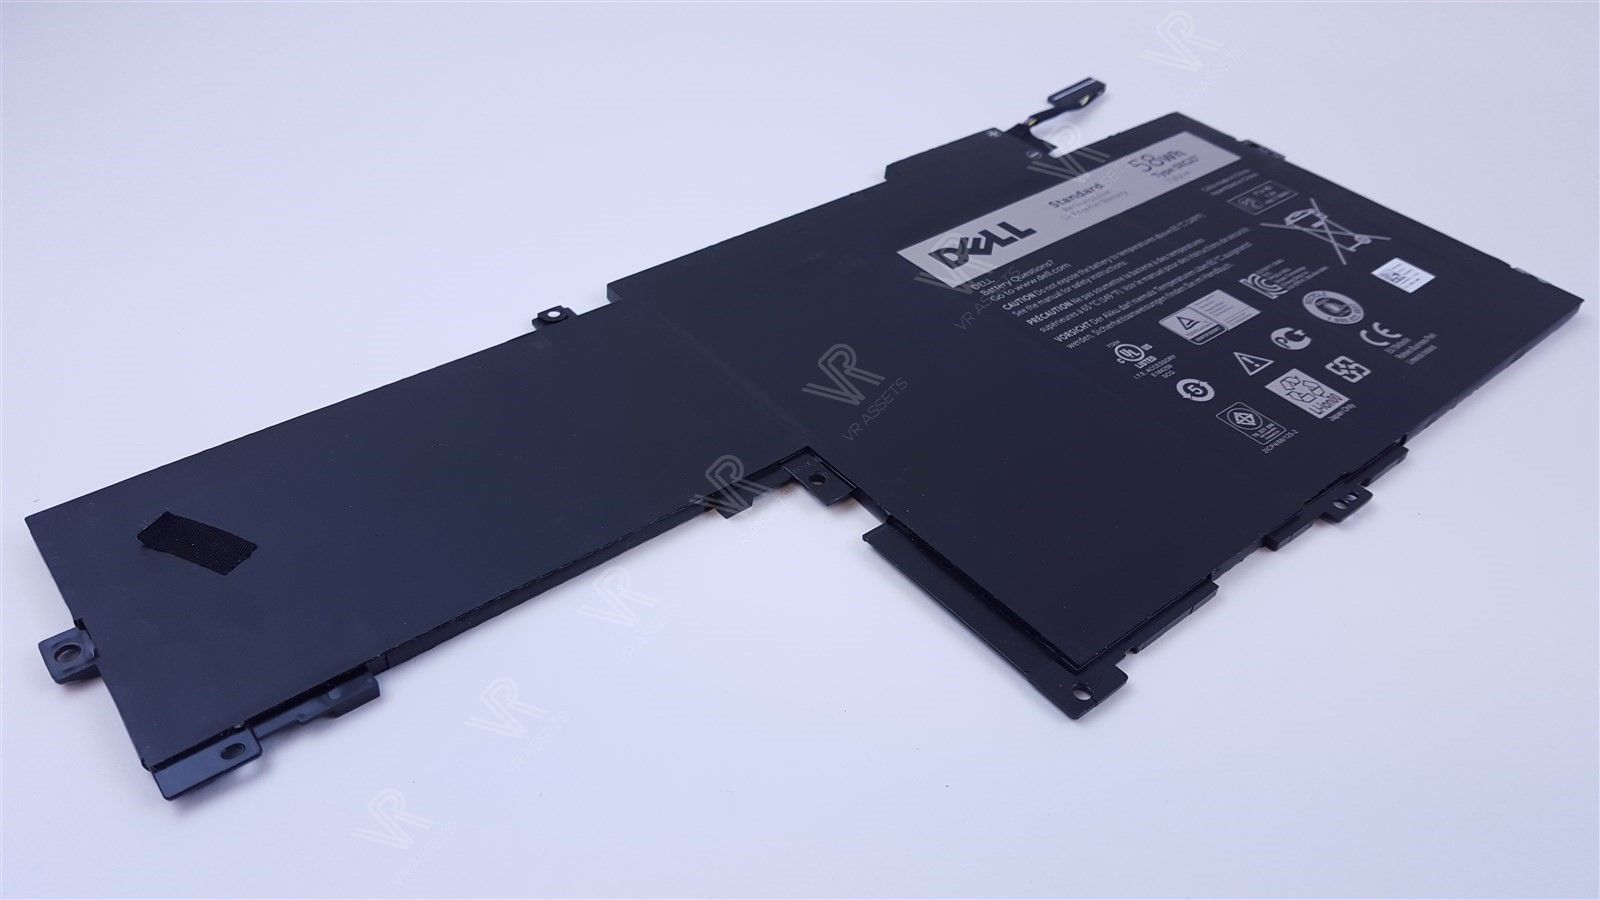 GENUINE Dell Inspiron 14 7000 14-7437 58Wh Laptop Battery C4MF8 0C4MF8 5KG27